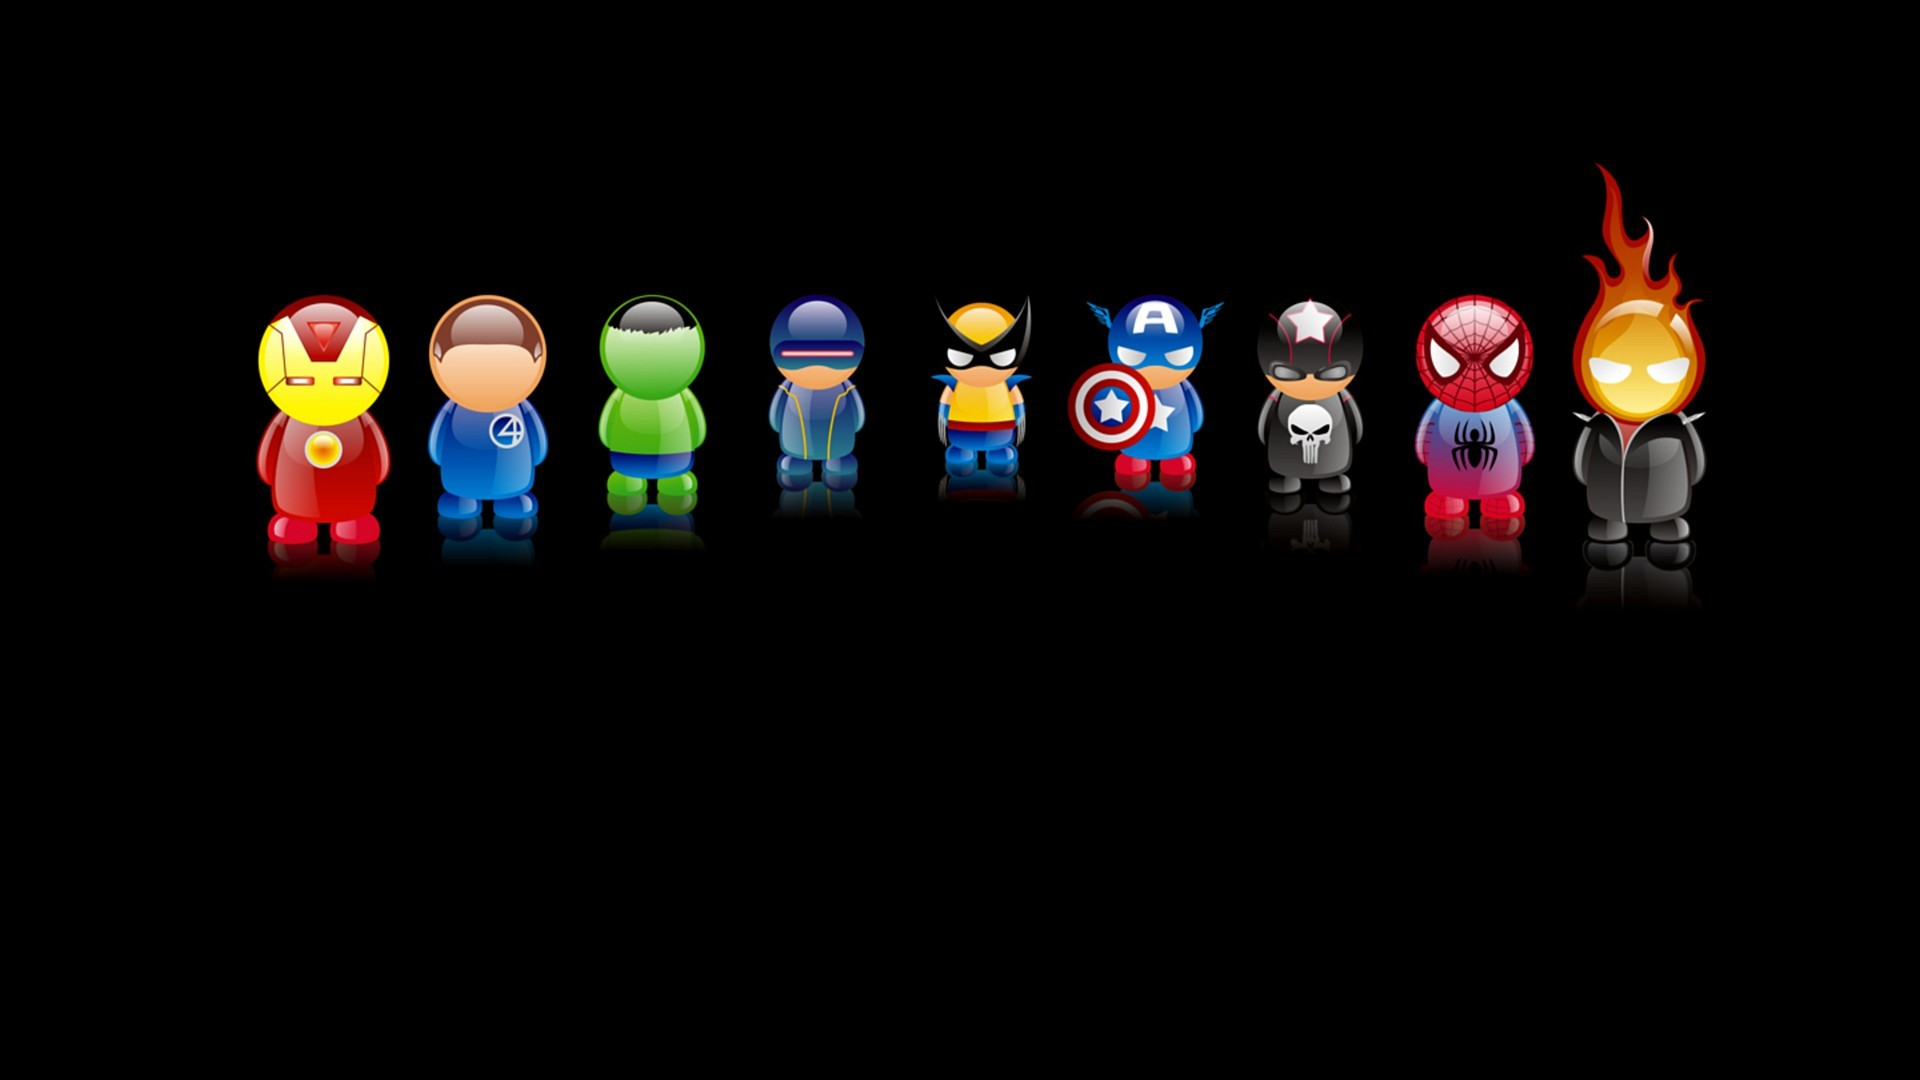 Marvel super heroes wallpaper 71 images 2560x1564 marvel wallpapers cool hd voltagebd Choice Image